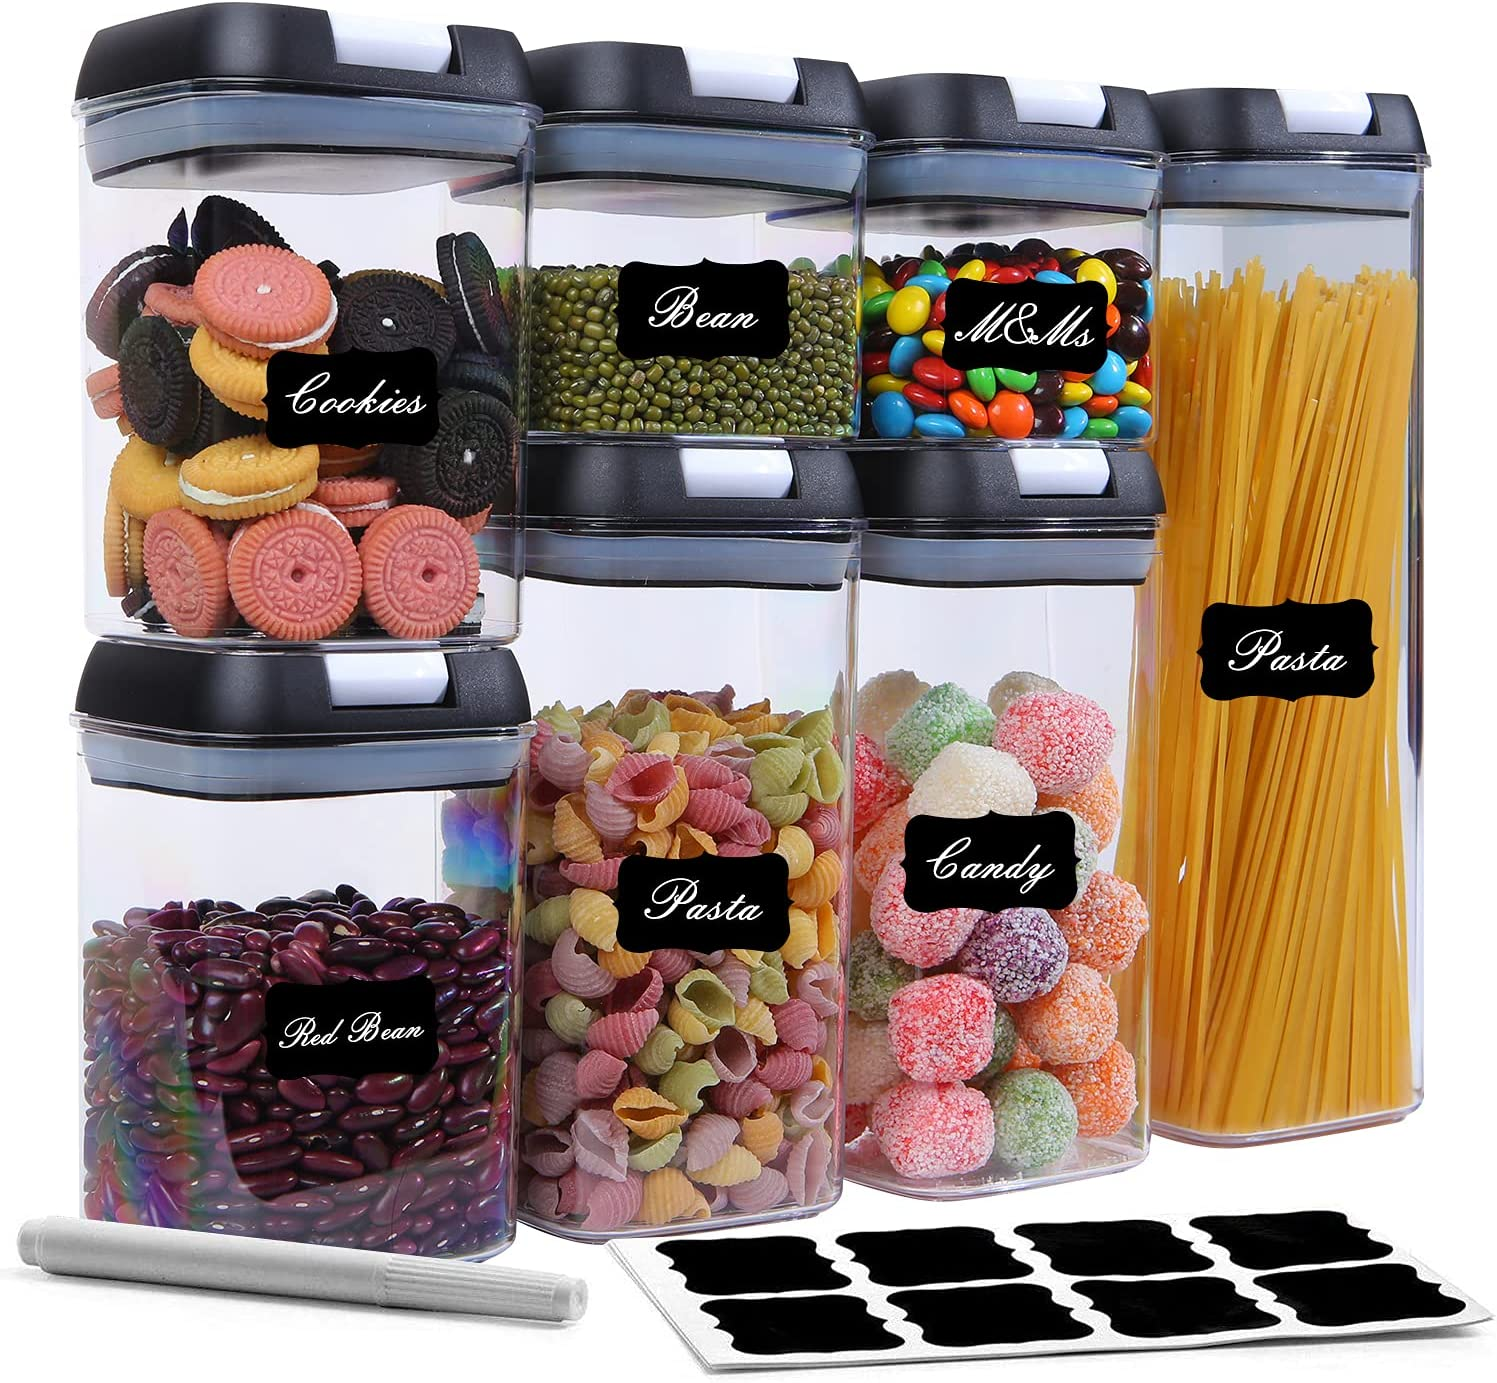 Airtight Food Storage Containers Set, BPA Free Cereal & Dry Food Storage Containers Set, 7 Pieces Kitchen & Pantry Organization Containers